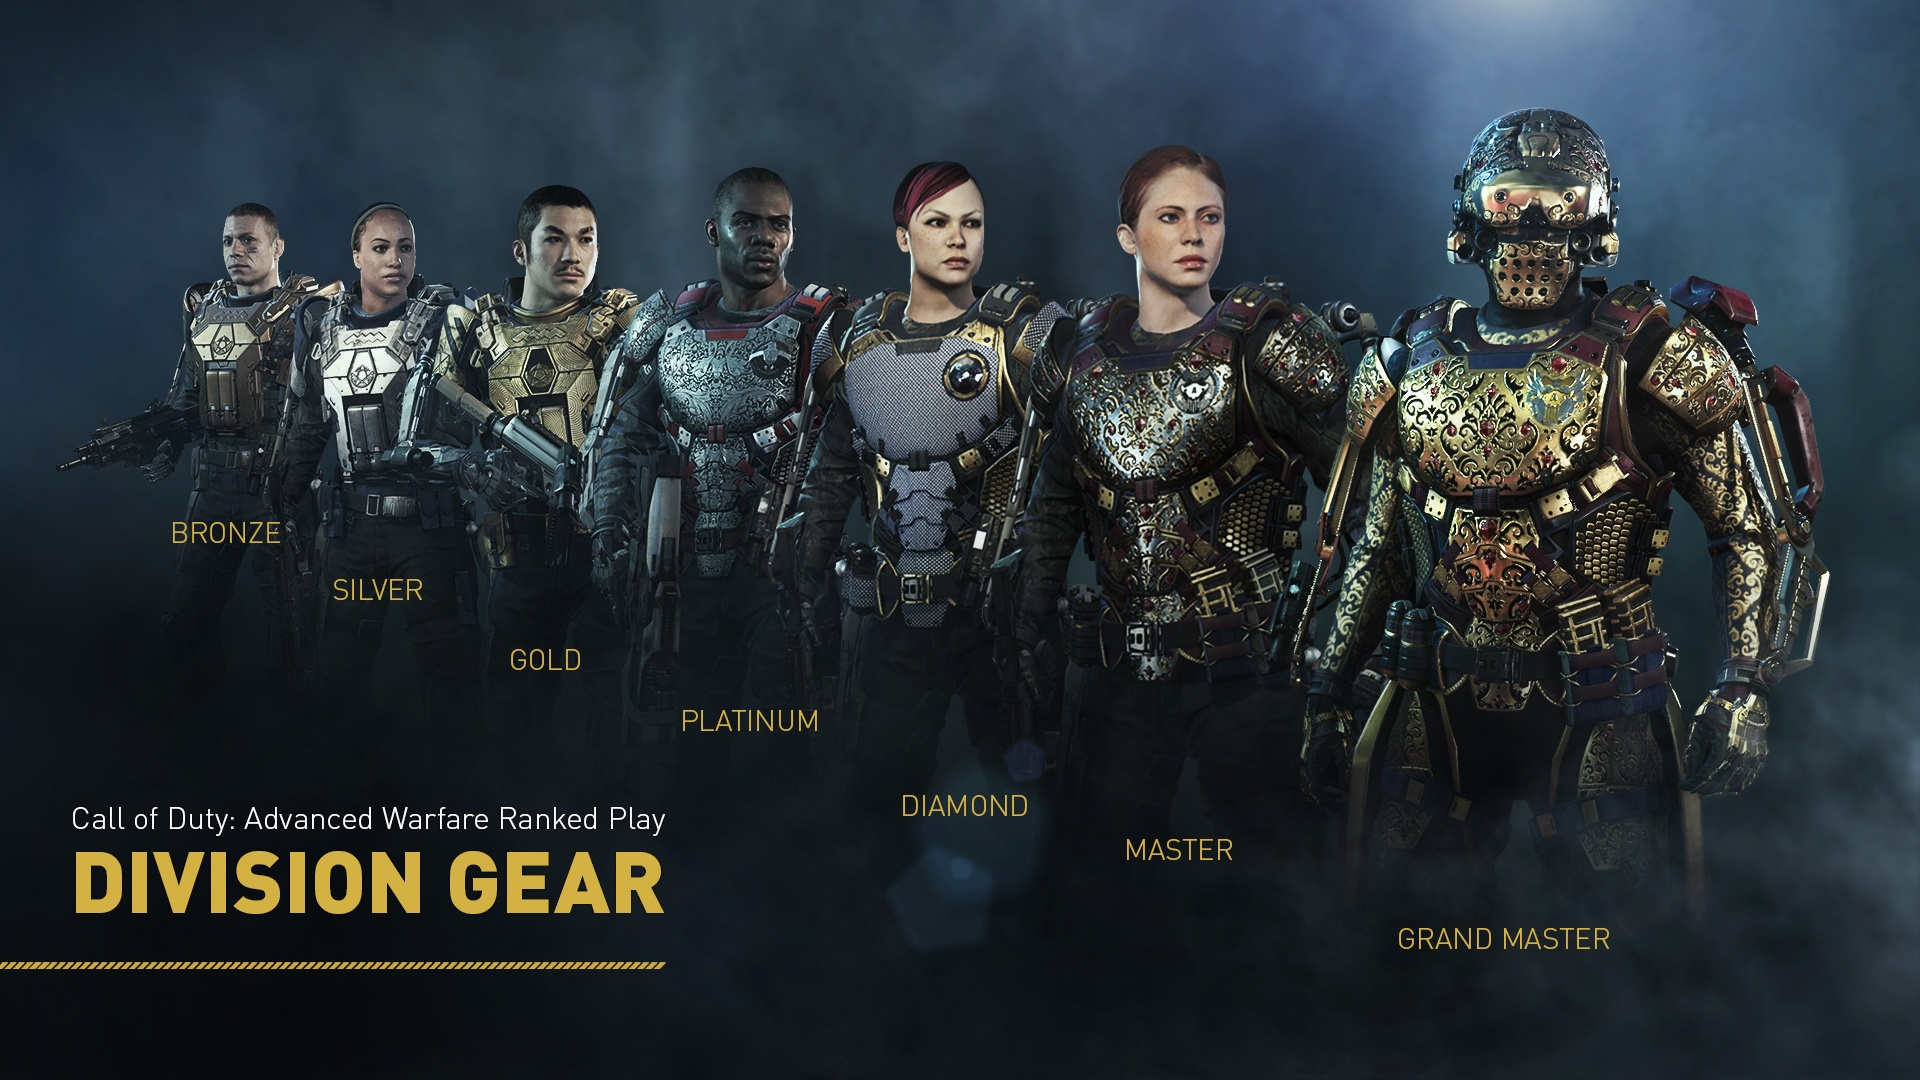 call of duty division gear